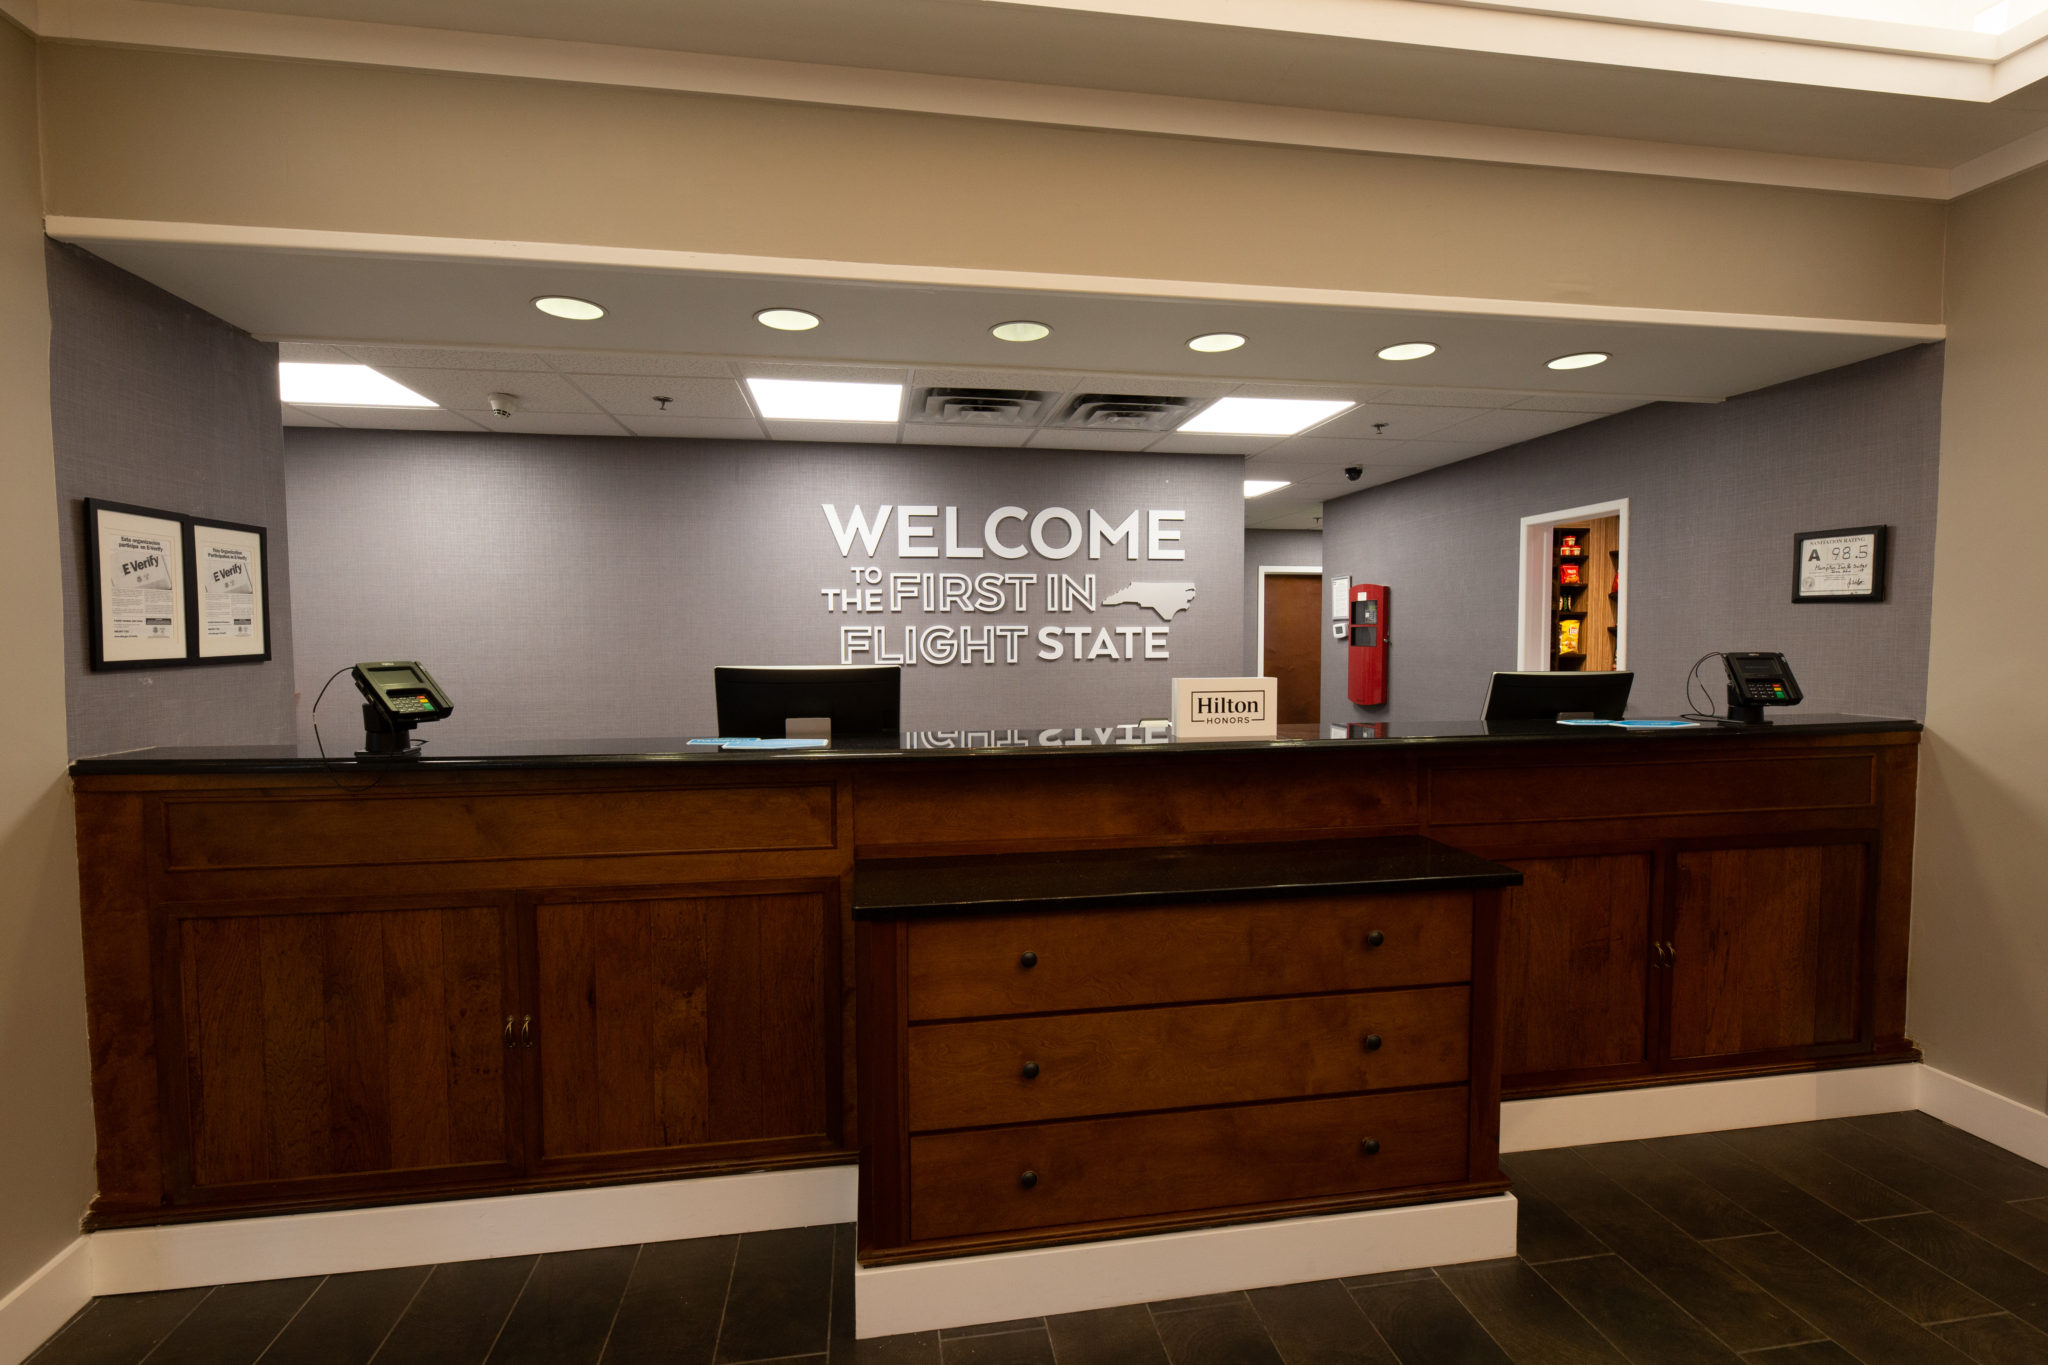 Hampton Inn & Suites RaleighCary I-40 (PNC Arena) lobby front desk